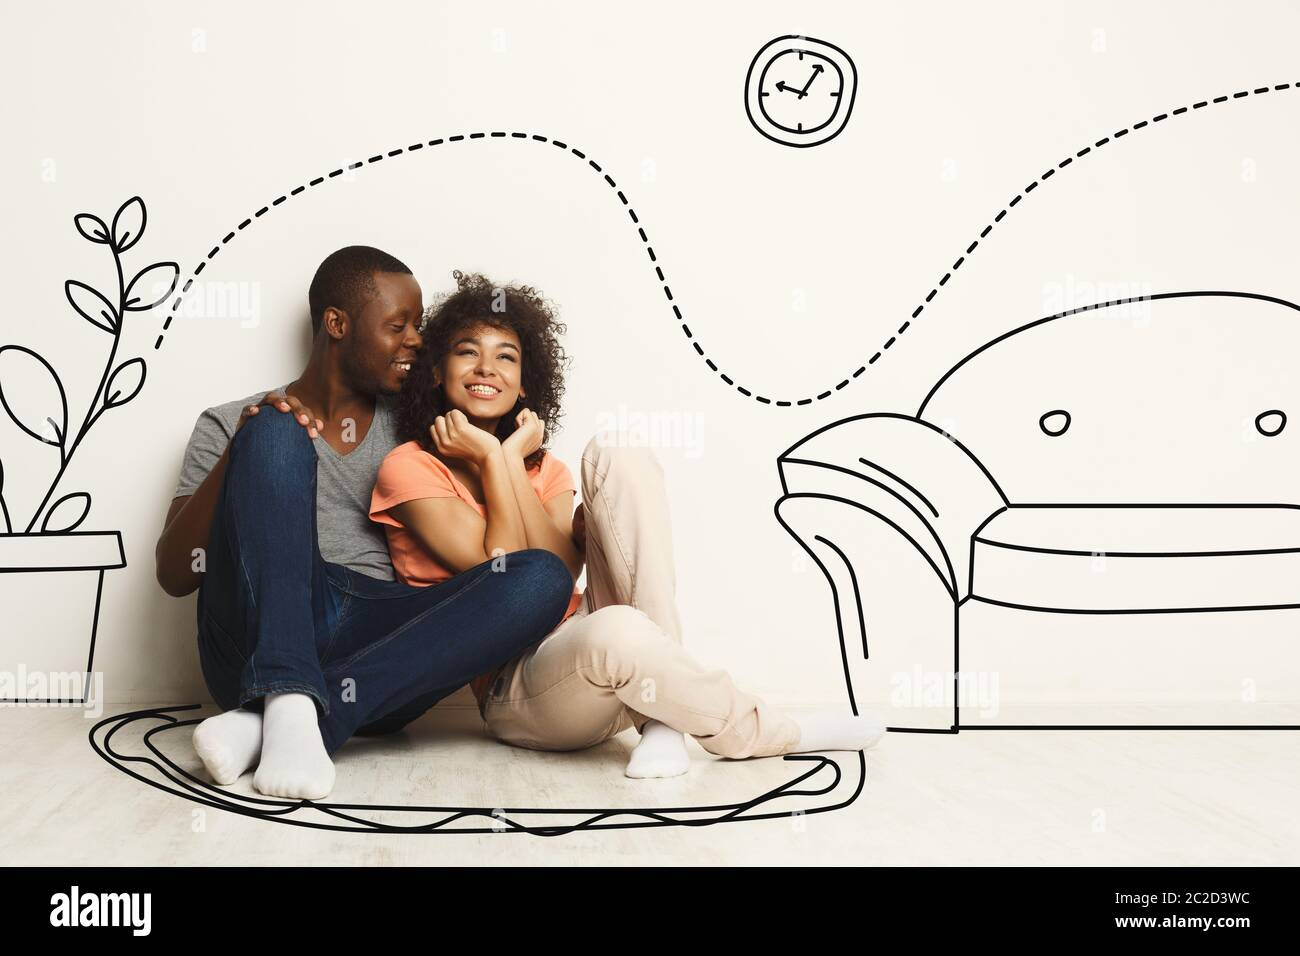 Black guy and his girlfriend imagining new furnished home against white wall with interior drawings Stock Photo